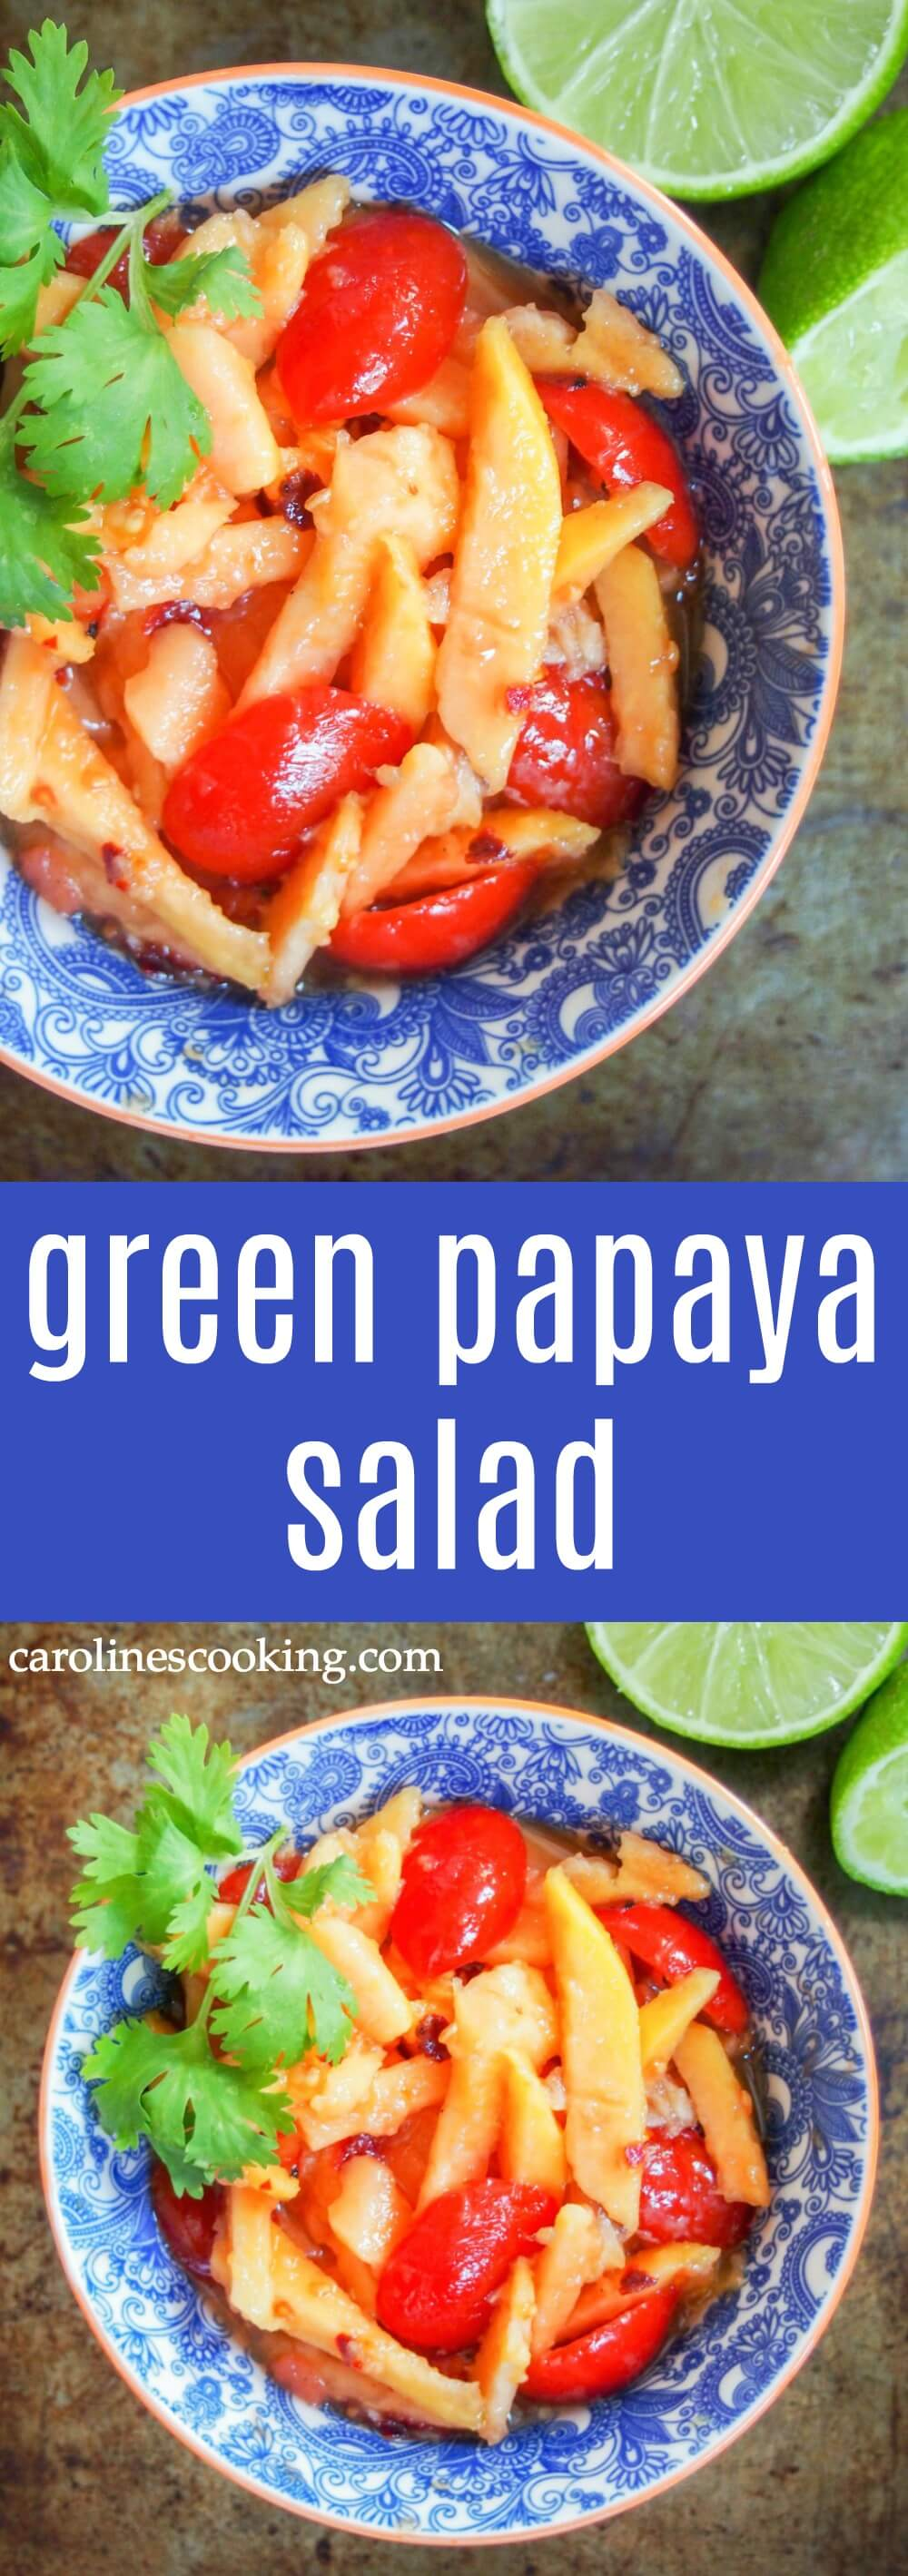 Green papaya salad is a refreshing, tasty side or appetizer with other Thai and Laos dishes. Easy to make & with great sweet-spicy-umami flavors.